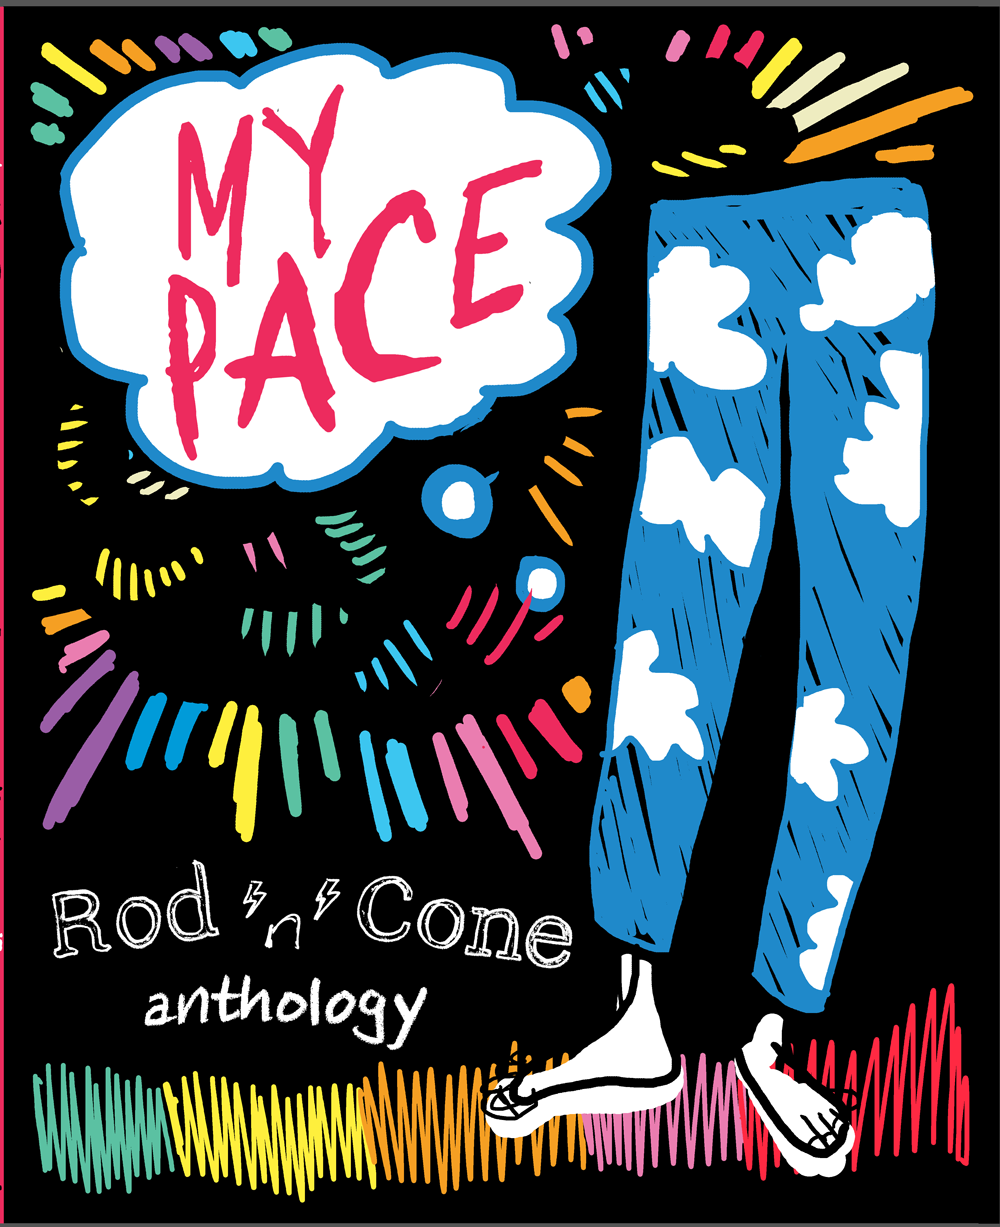 rodandconepress: Biannual comics anthology debuts in two weeks @ SPX! Cooper Whittlesey Anna McGlynn Iona Fox Hannah Kaplan Reilly Hadden Sophie Yanow Stephanie Kwak No theme, just focused on strong writing // spark. Me 'n' Anna's small press debut!